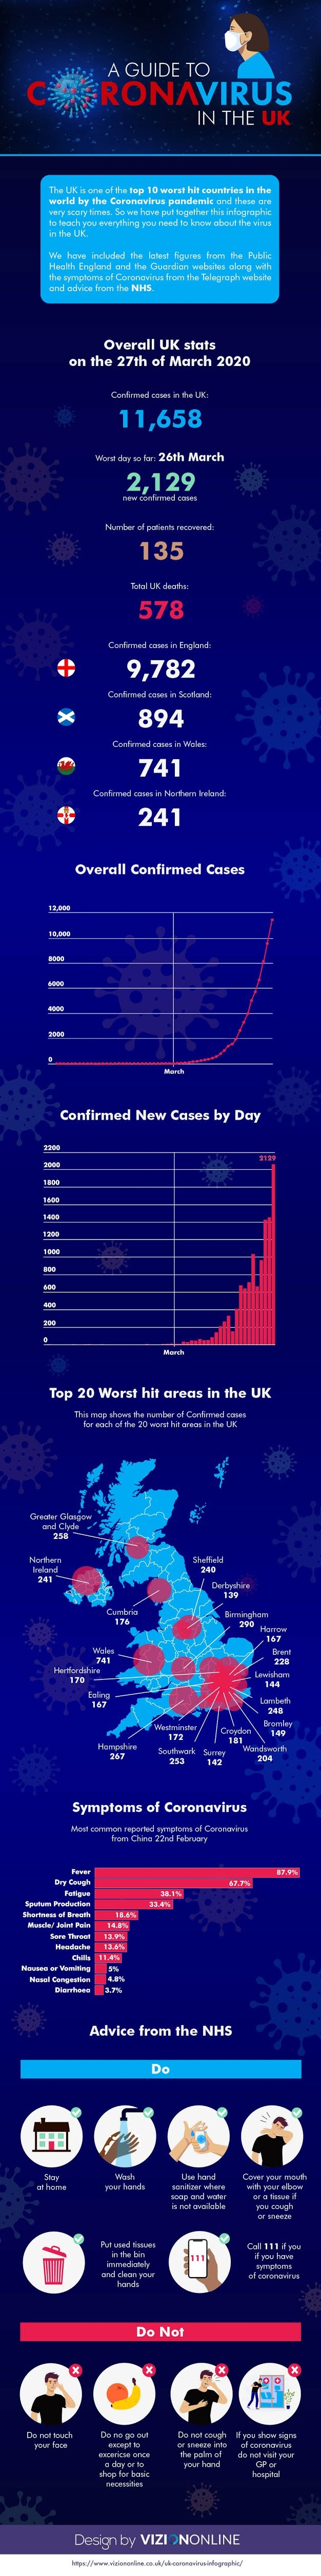 A Guide to Coronavirus in the UK #Infographic